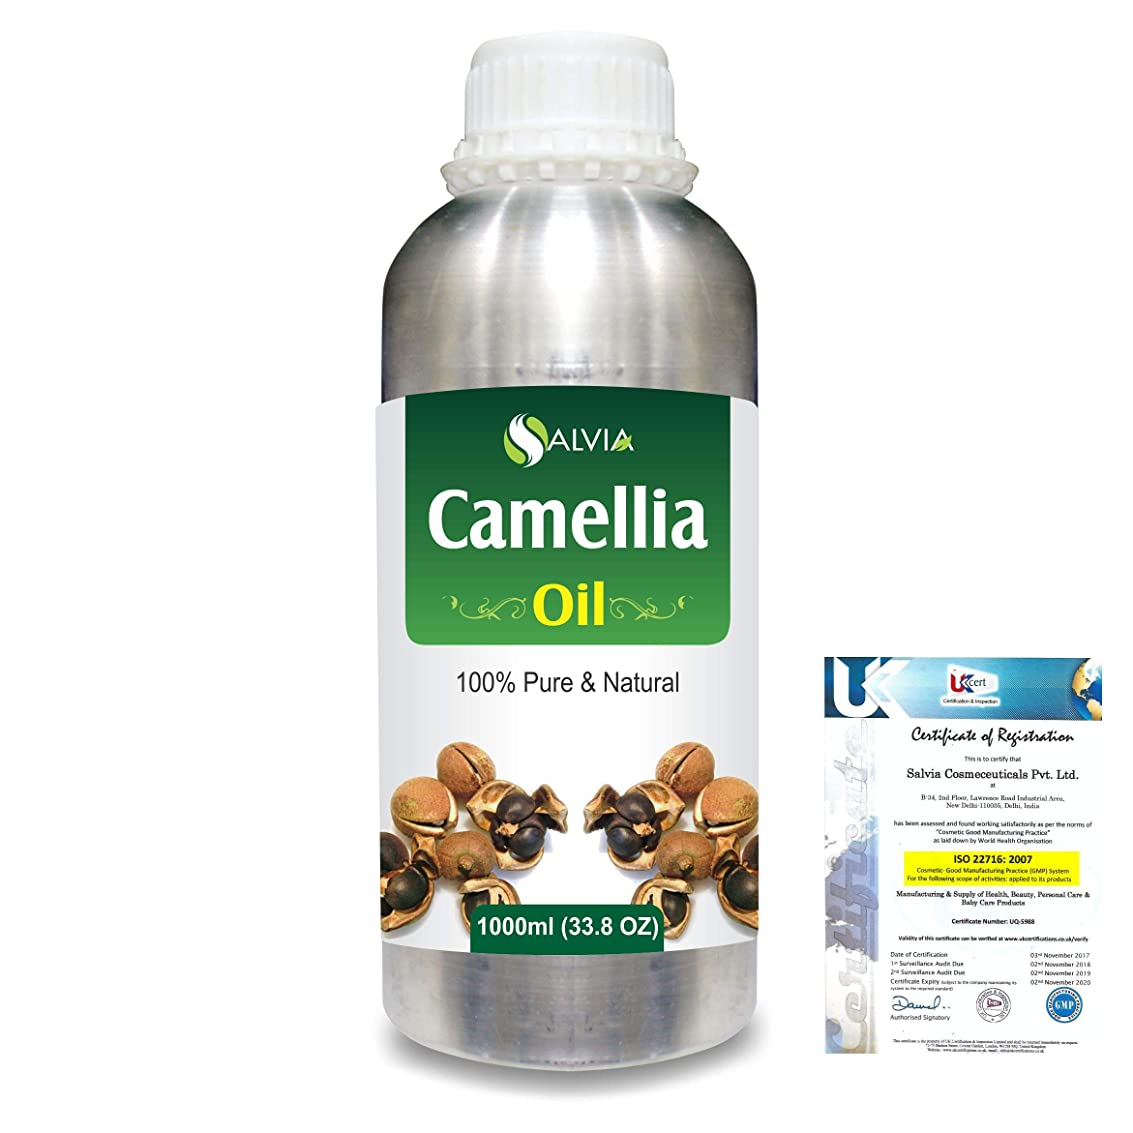 強調する性格名前でCamellia (Camellia Sasanqua) 100% Natural Pure Essential Oil 1000ml/33.8fl.oz.